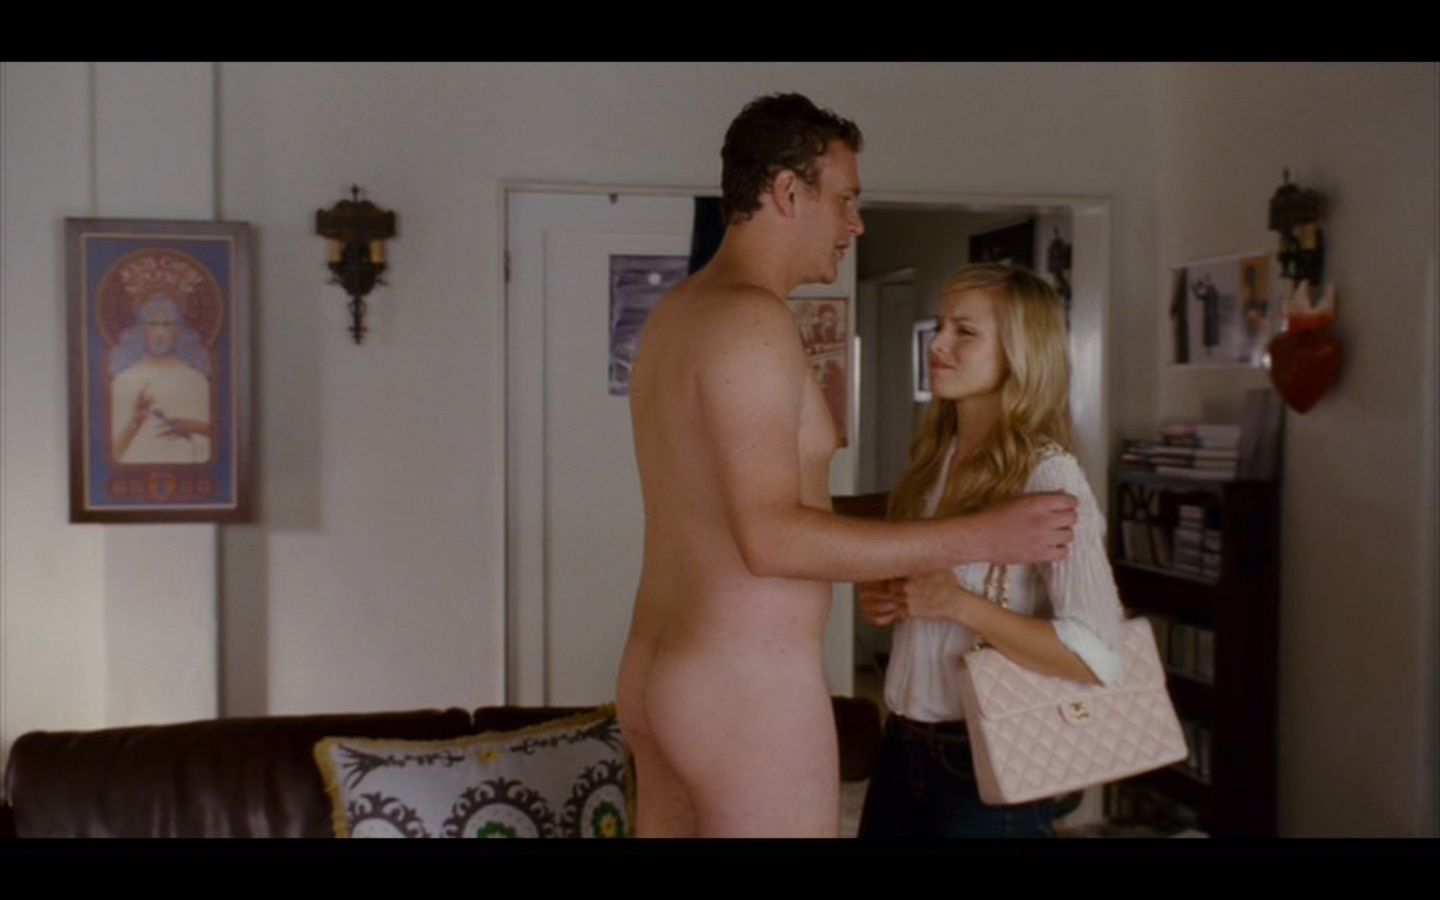 Jason segel nude pics, hot scenes equus